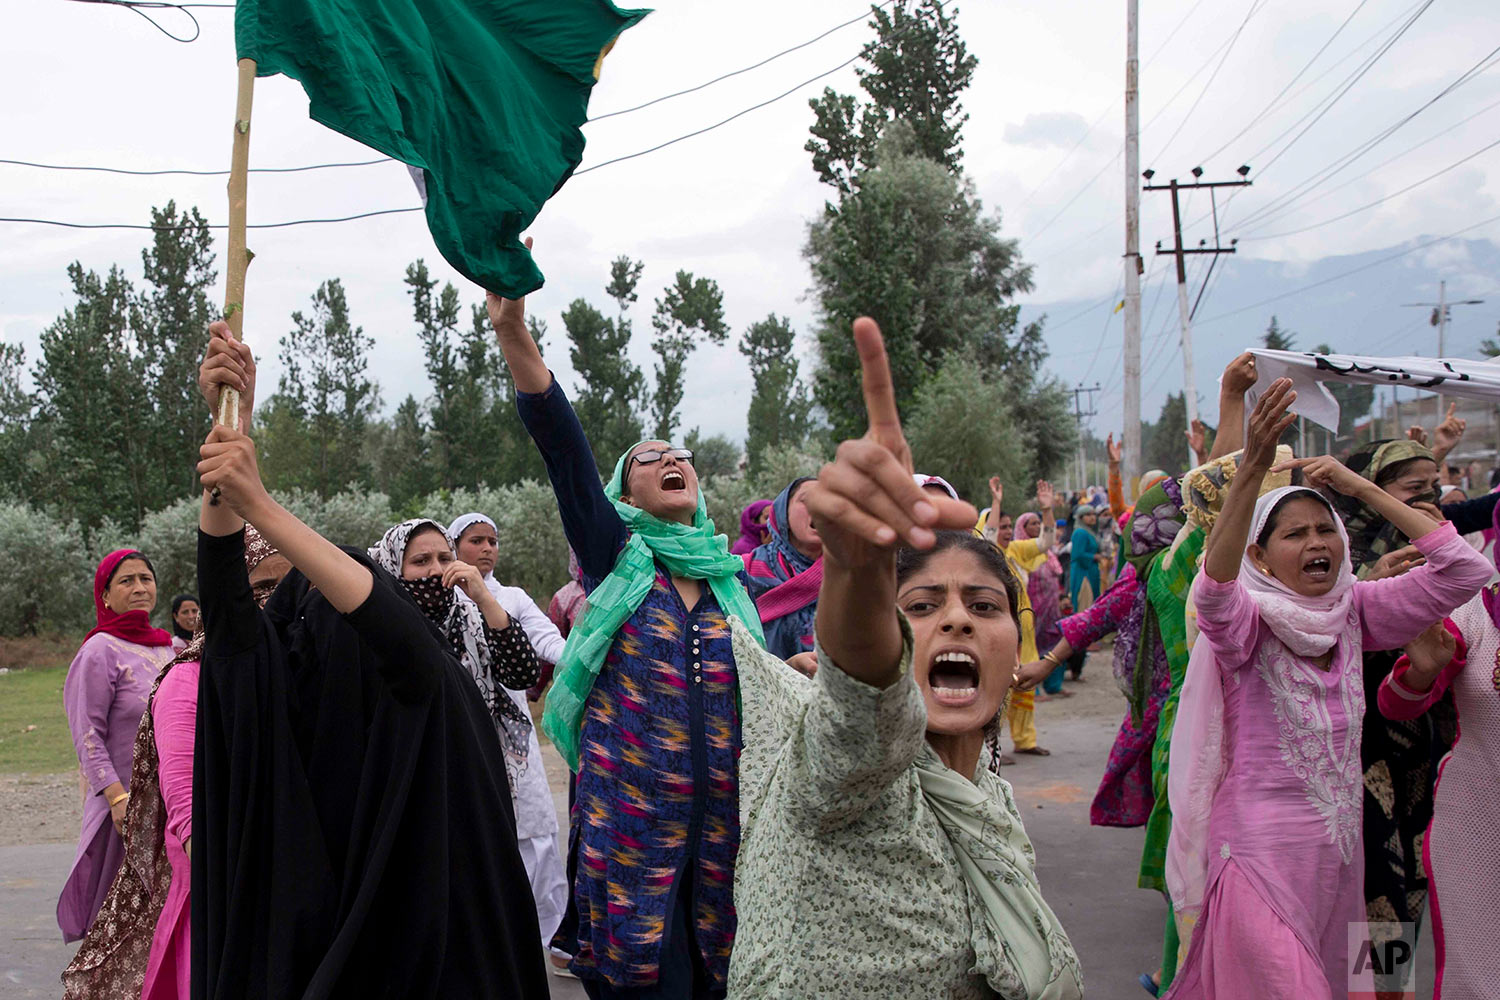 Women shout slogans and march on a street after Friday prayers in Srinagar, Indian controlled Kashmir, Friday, Aug. 9, 2019. A strict curfew in Indian-administered Kashmir in effect for a fifth day was eased Friday to allow residents to pray at mosques, officials said, but some protests still broke out in the disputed region. The predominantly Muslim area has been under the unprecedented lockdown and near-total communications blackout to prevent unrest and protests after India's Hindu nationalist-led government said Monday it was revoking Kashmir's special constitutional status and downgrading its statehood. (AP Photo/ Dar Yasin)